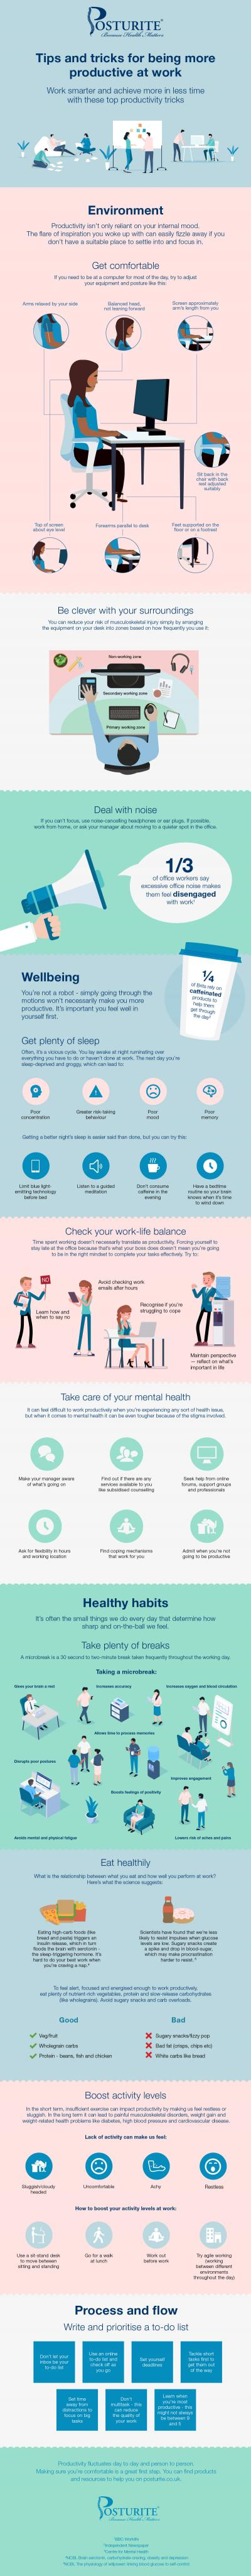 An infographic guide to boosting productivity at work